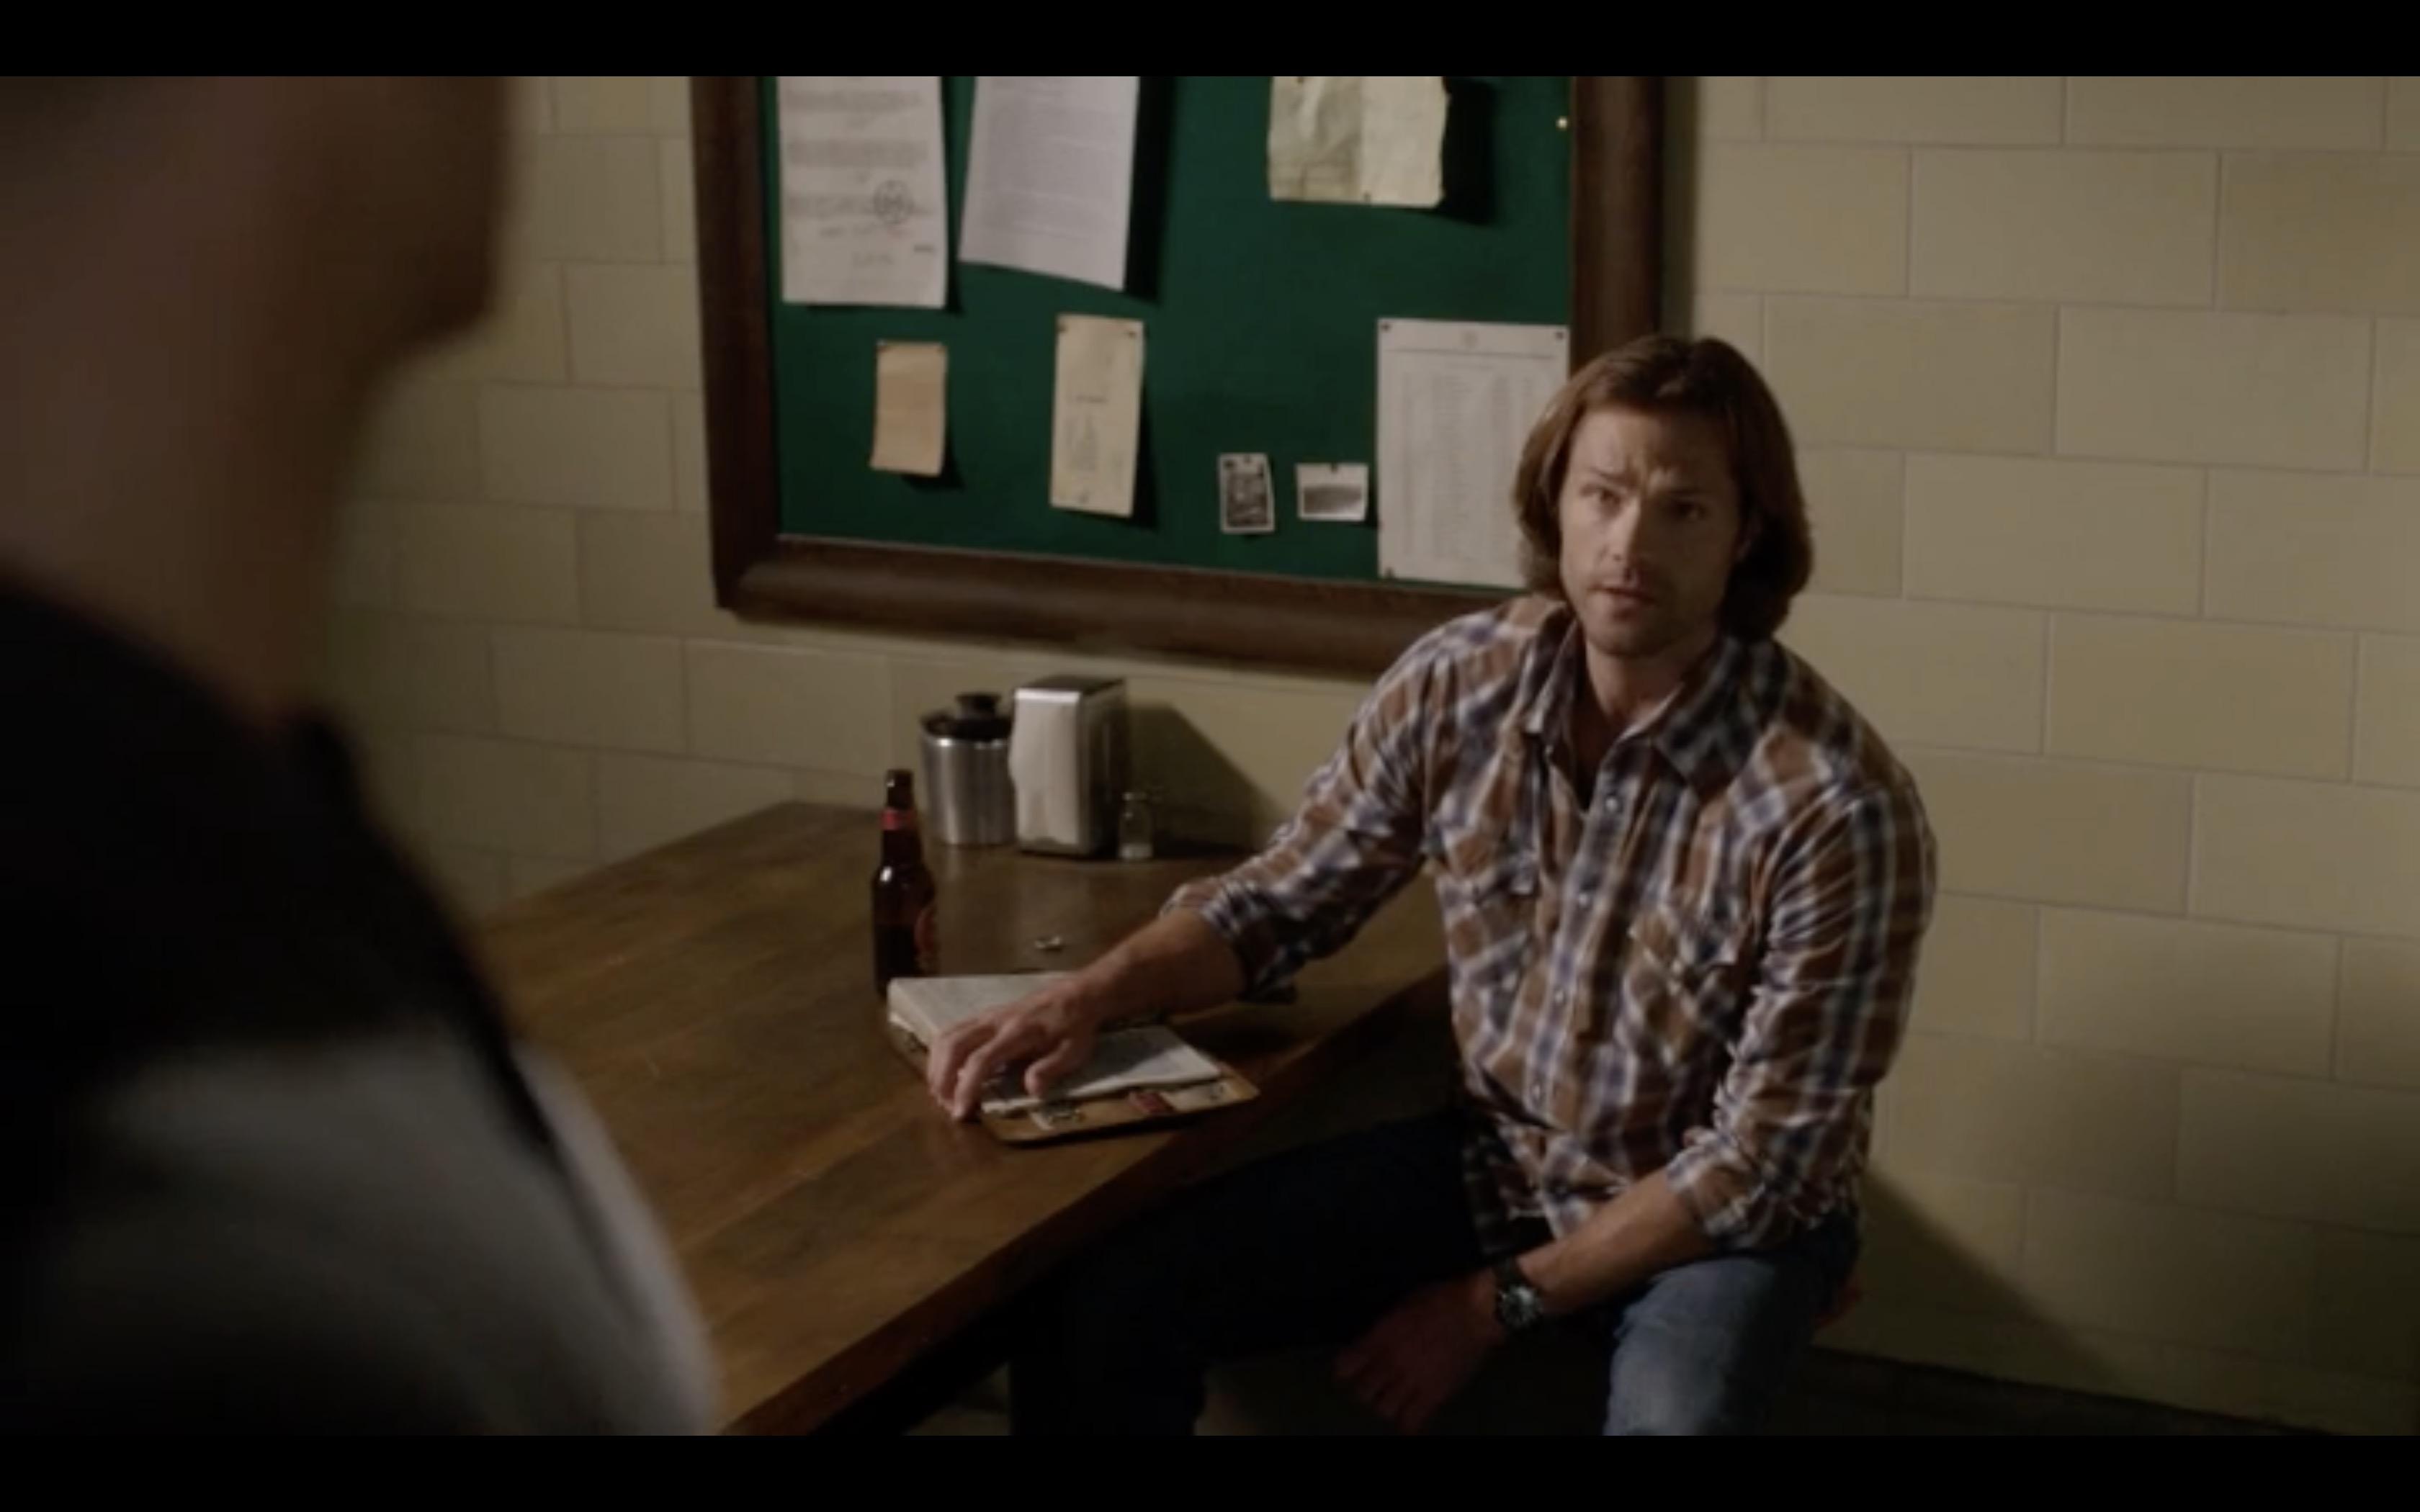 supernatural jack learning from dean drinking beer eating fries mttg